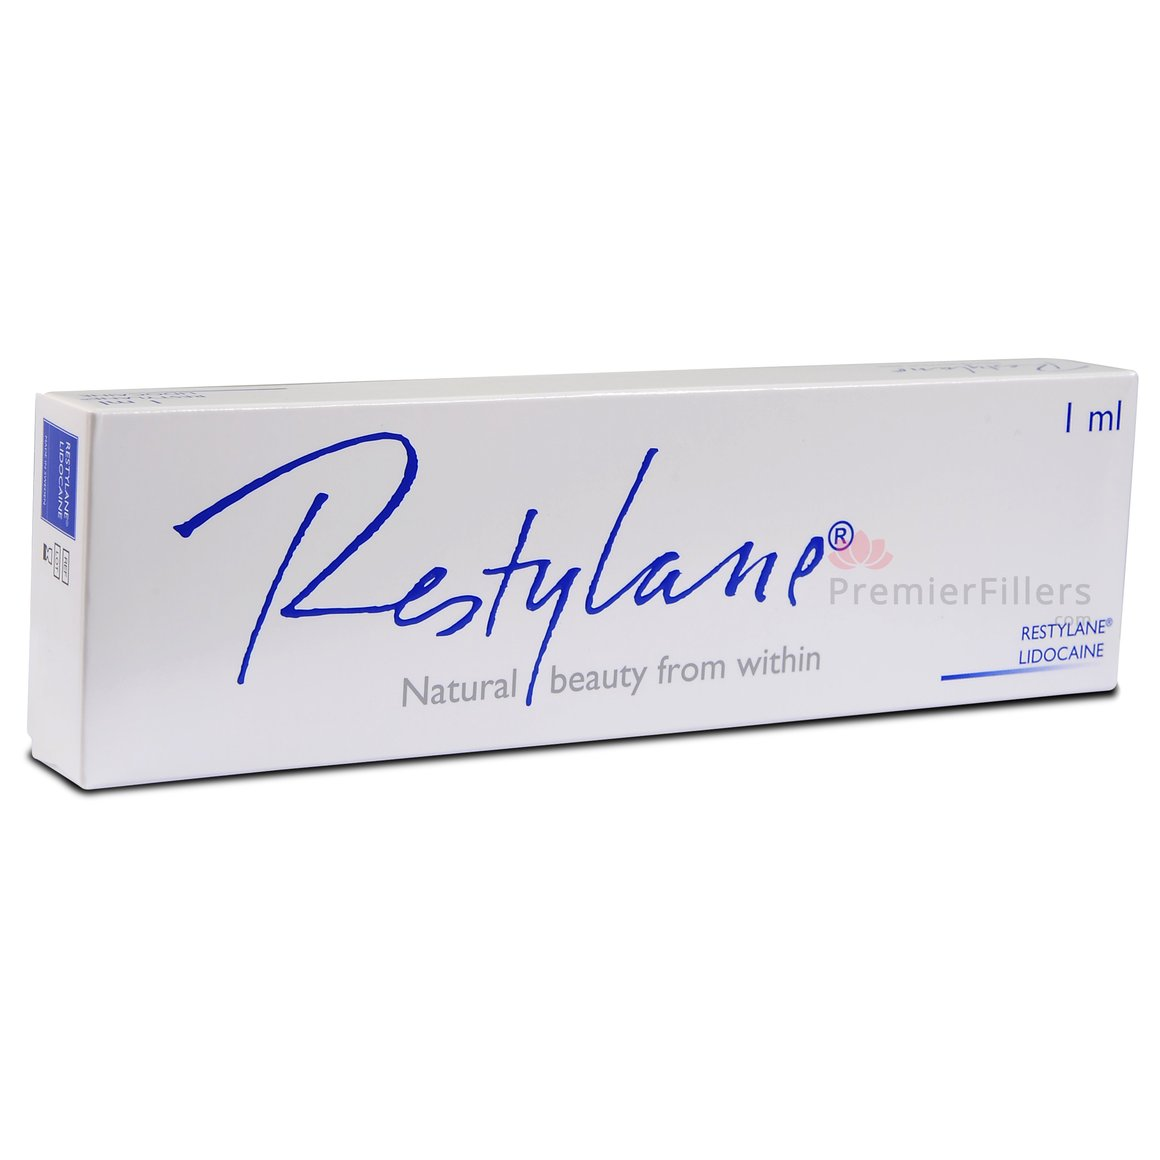 Restylane estmed.by